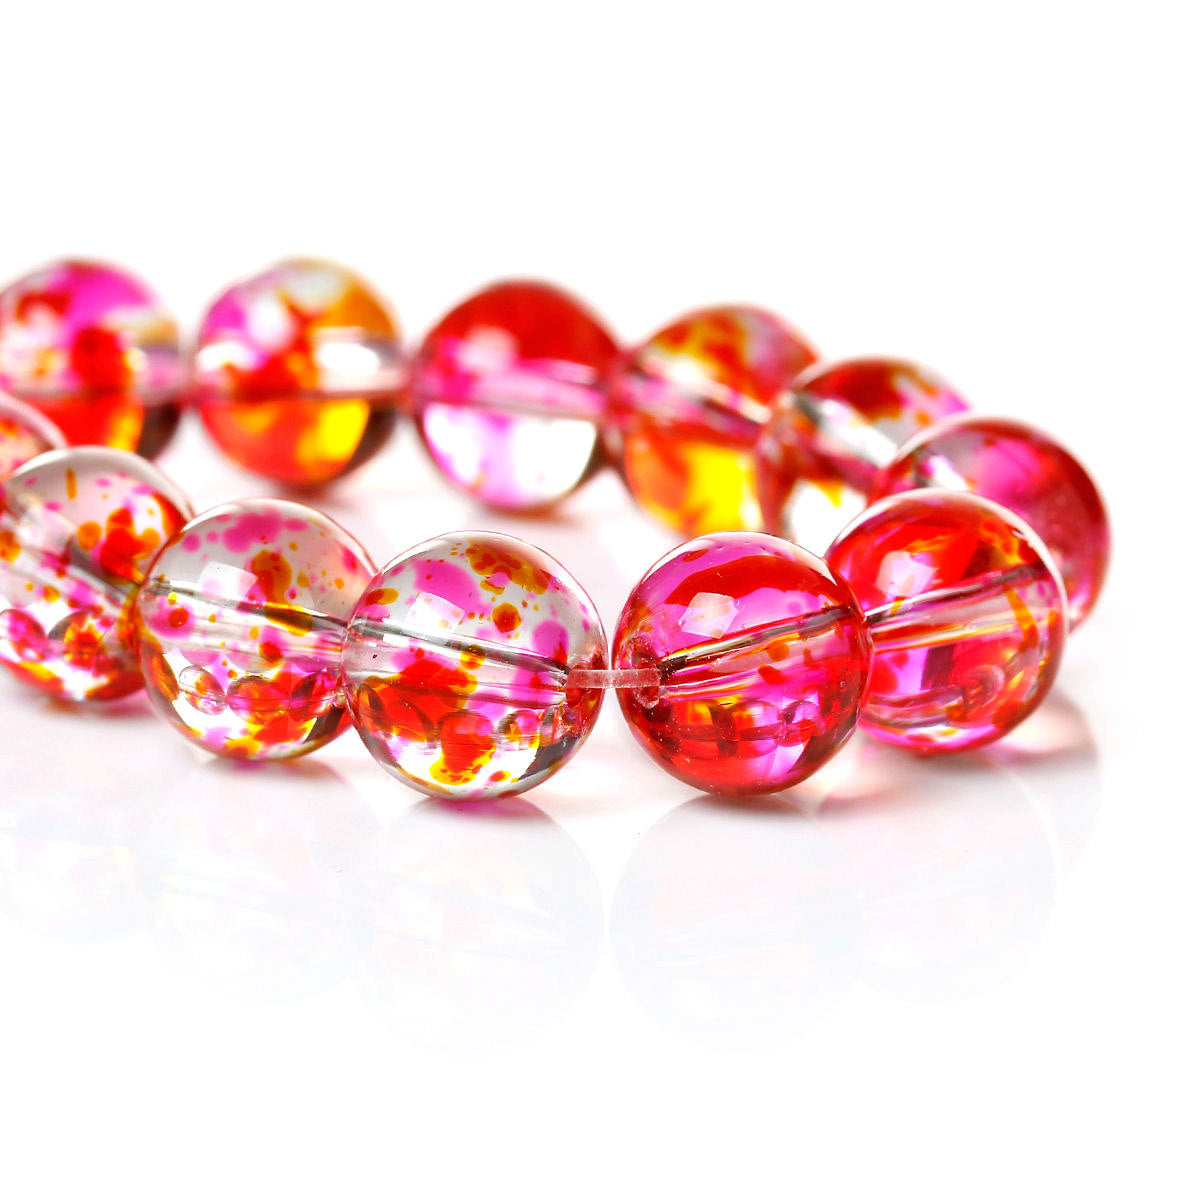 10mm Pink orange red spotted round glass beads - Multicolor spot pattern glass beads - 10mm beads - Glass beads - 10 pieces (1503)